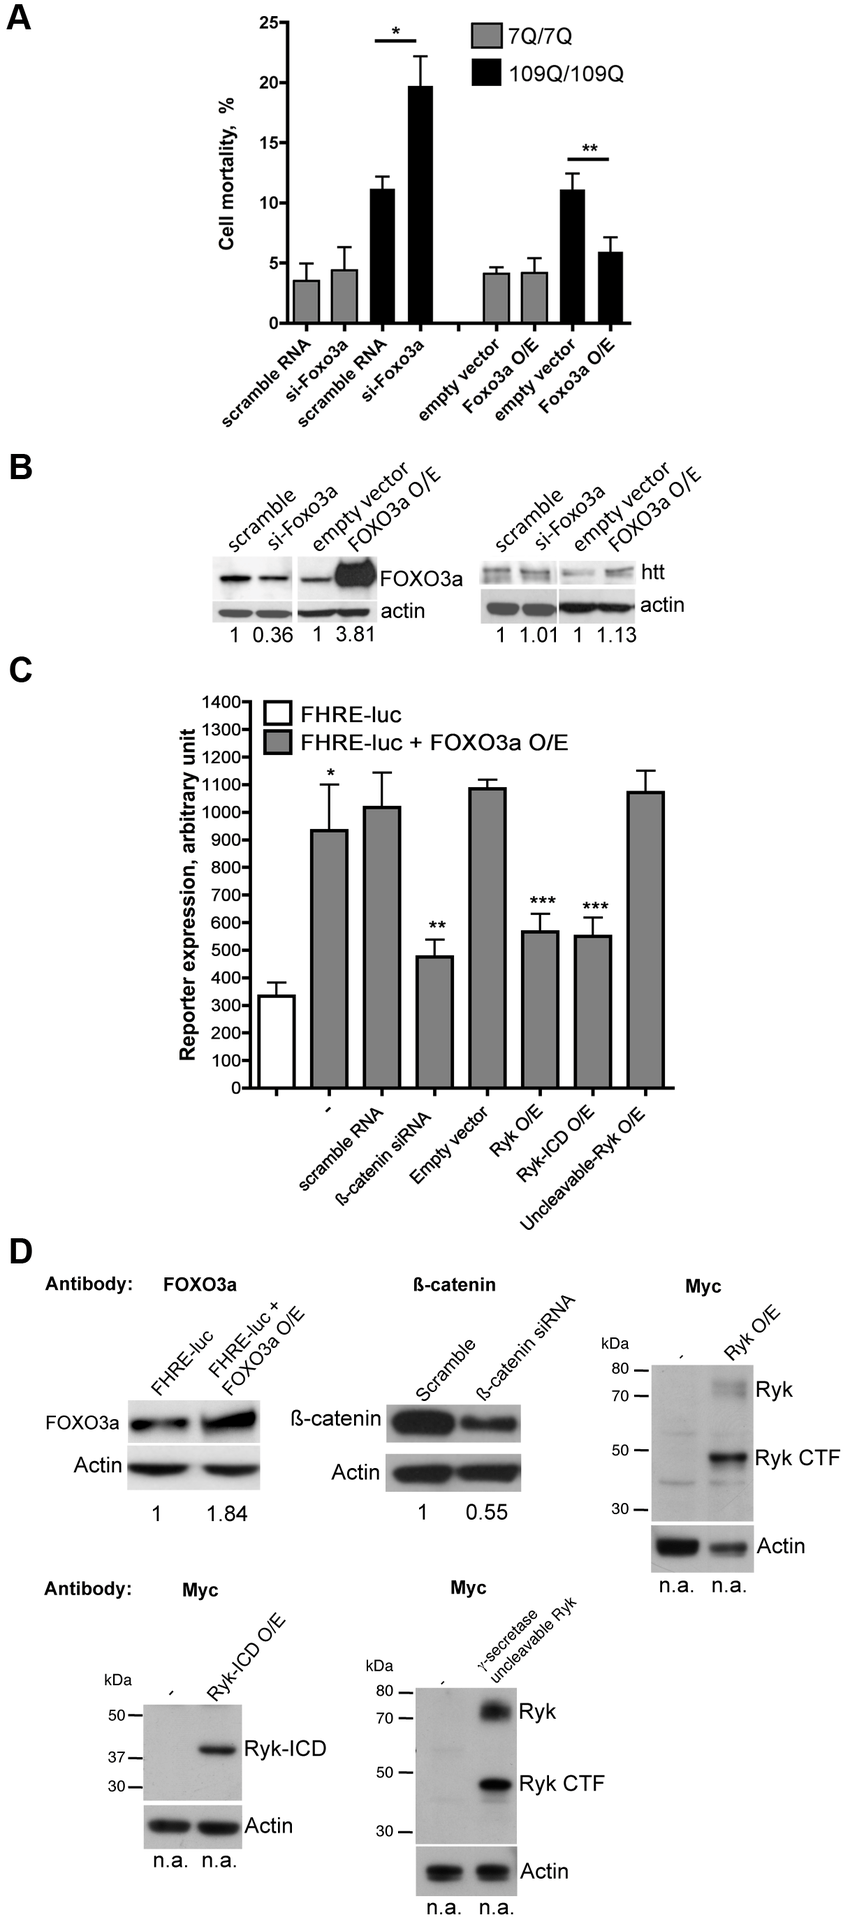 The Ryk ICD represses the transcriptional activity of